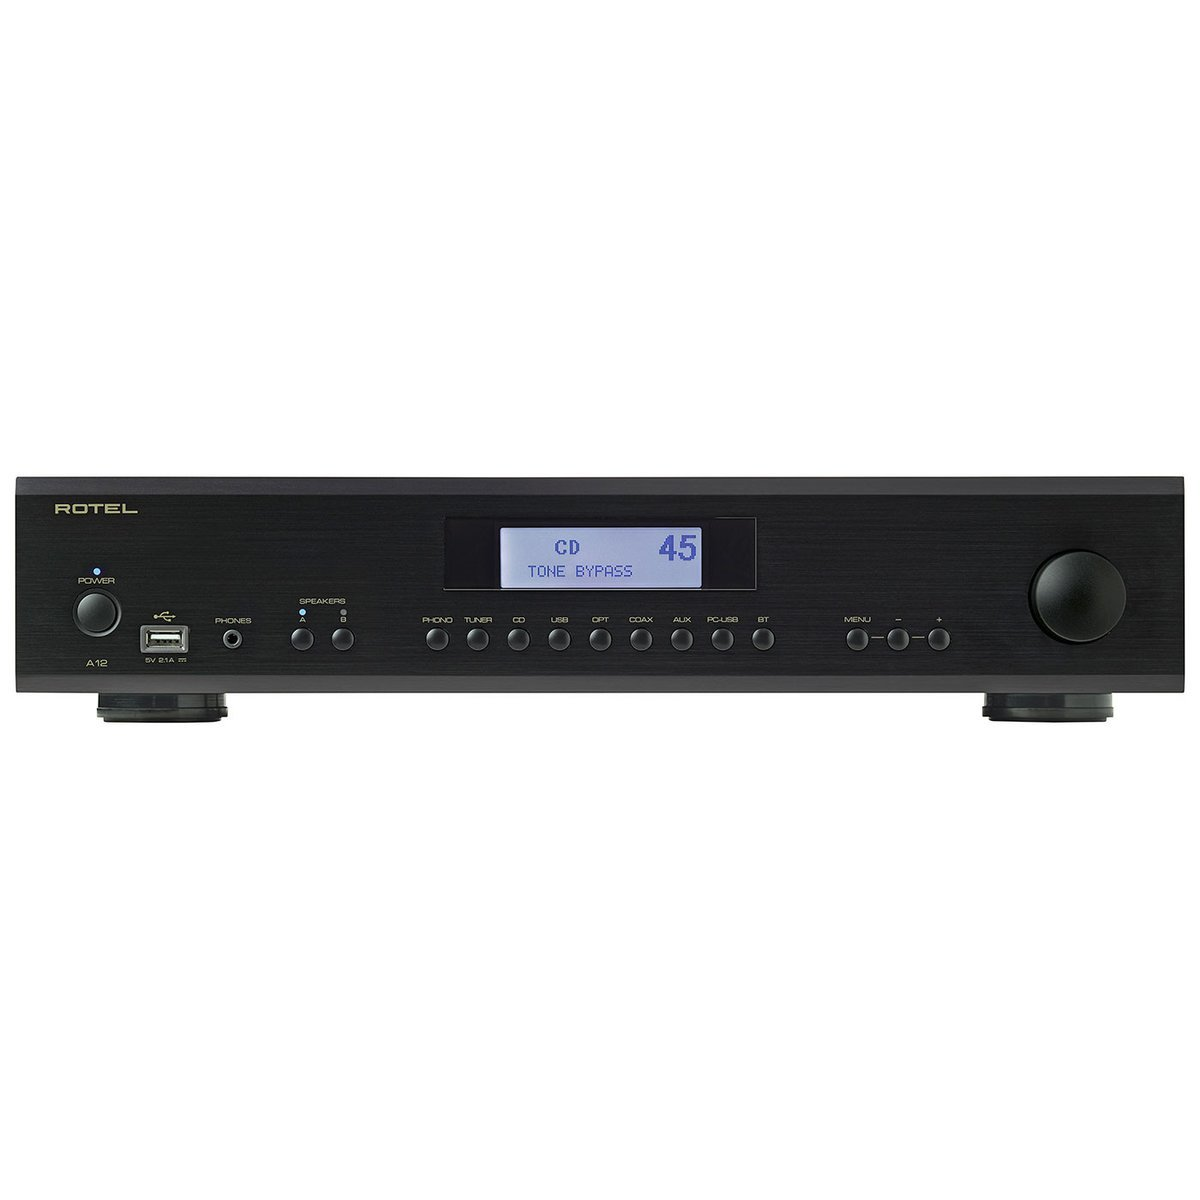 Rotel A12 Amplifier